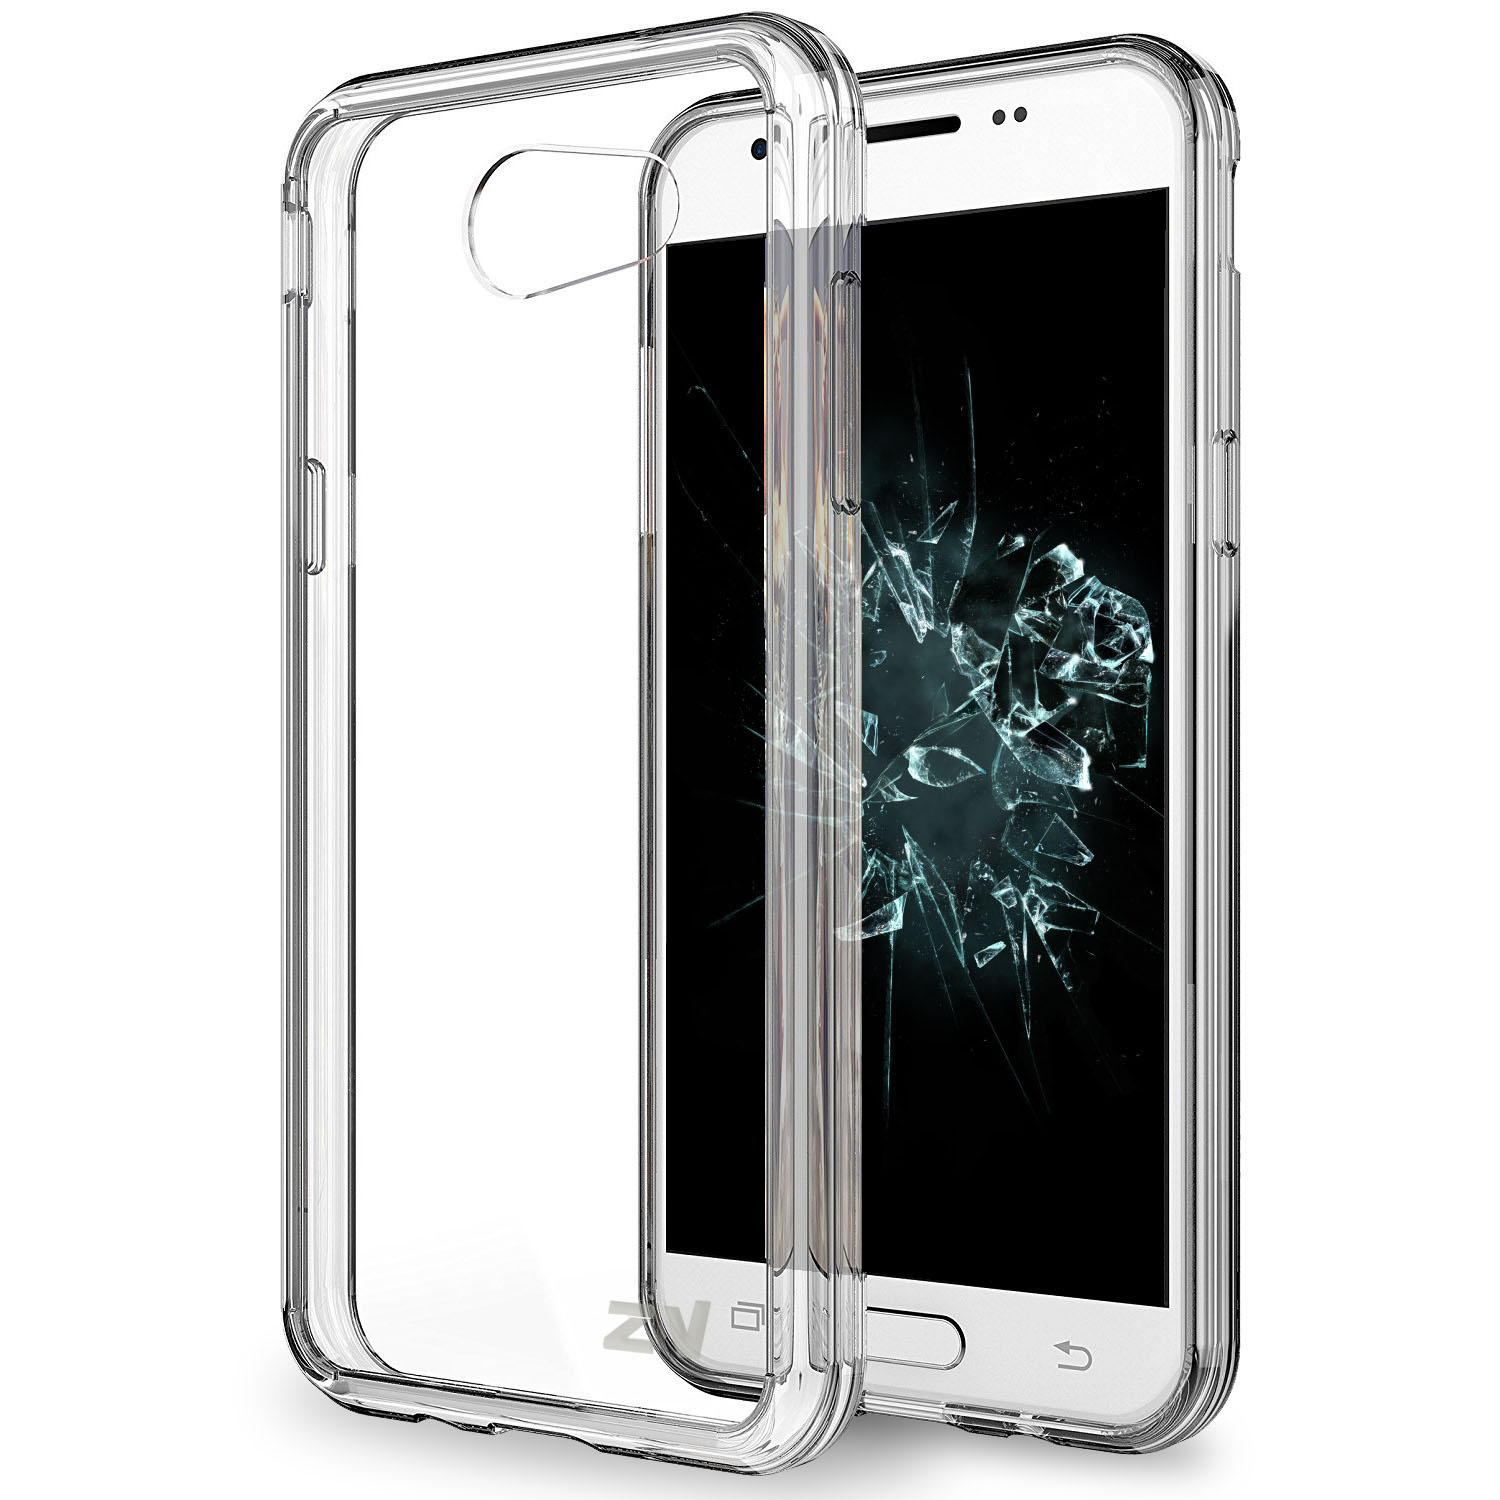 PC+TPU Series for Galaxy J3 Emerge / J3 Prime / Amp Prime 2 Case - Thin and Lightweight with Heavy Duty Protection Shockproof and Slim Dual Layer